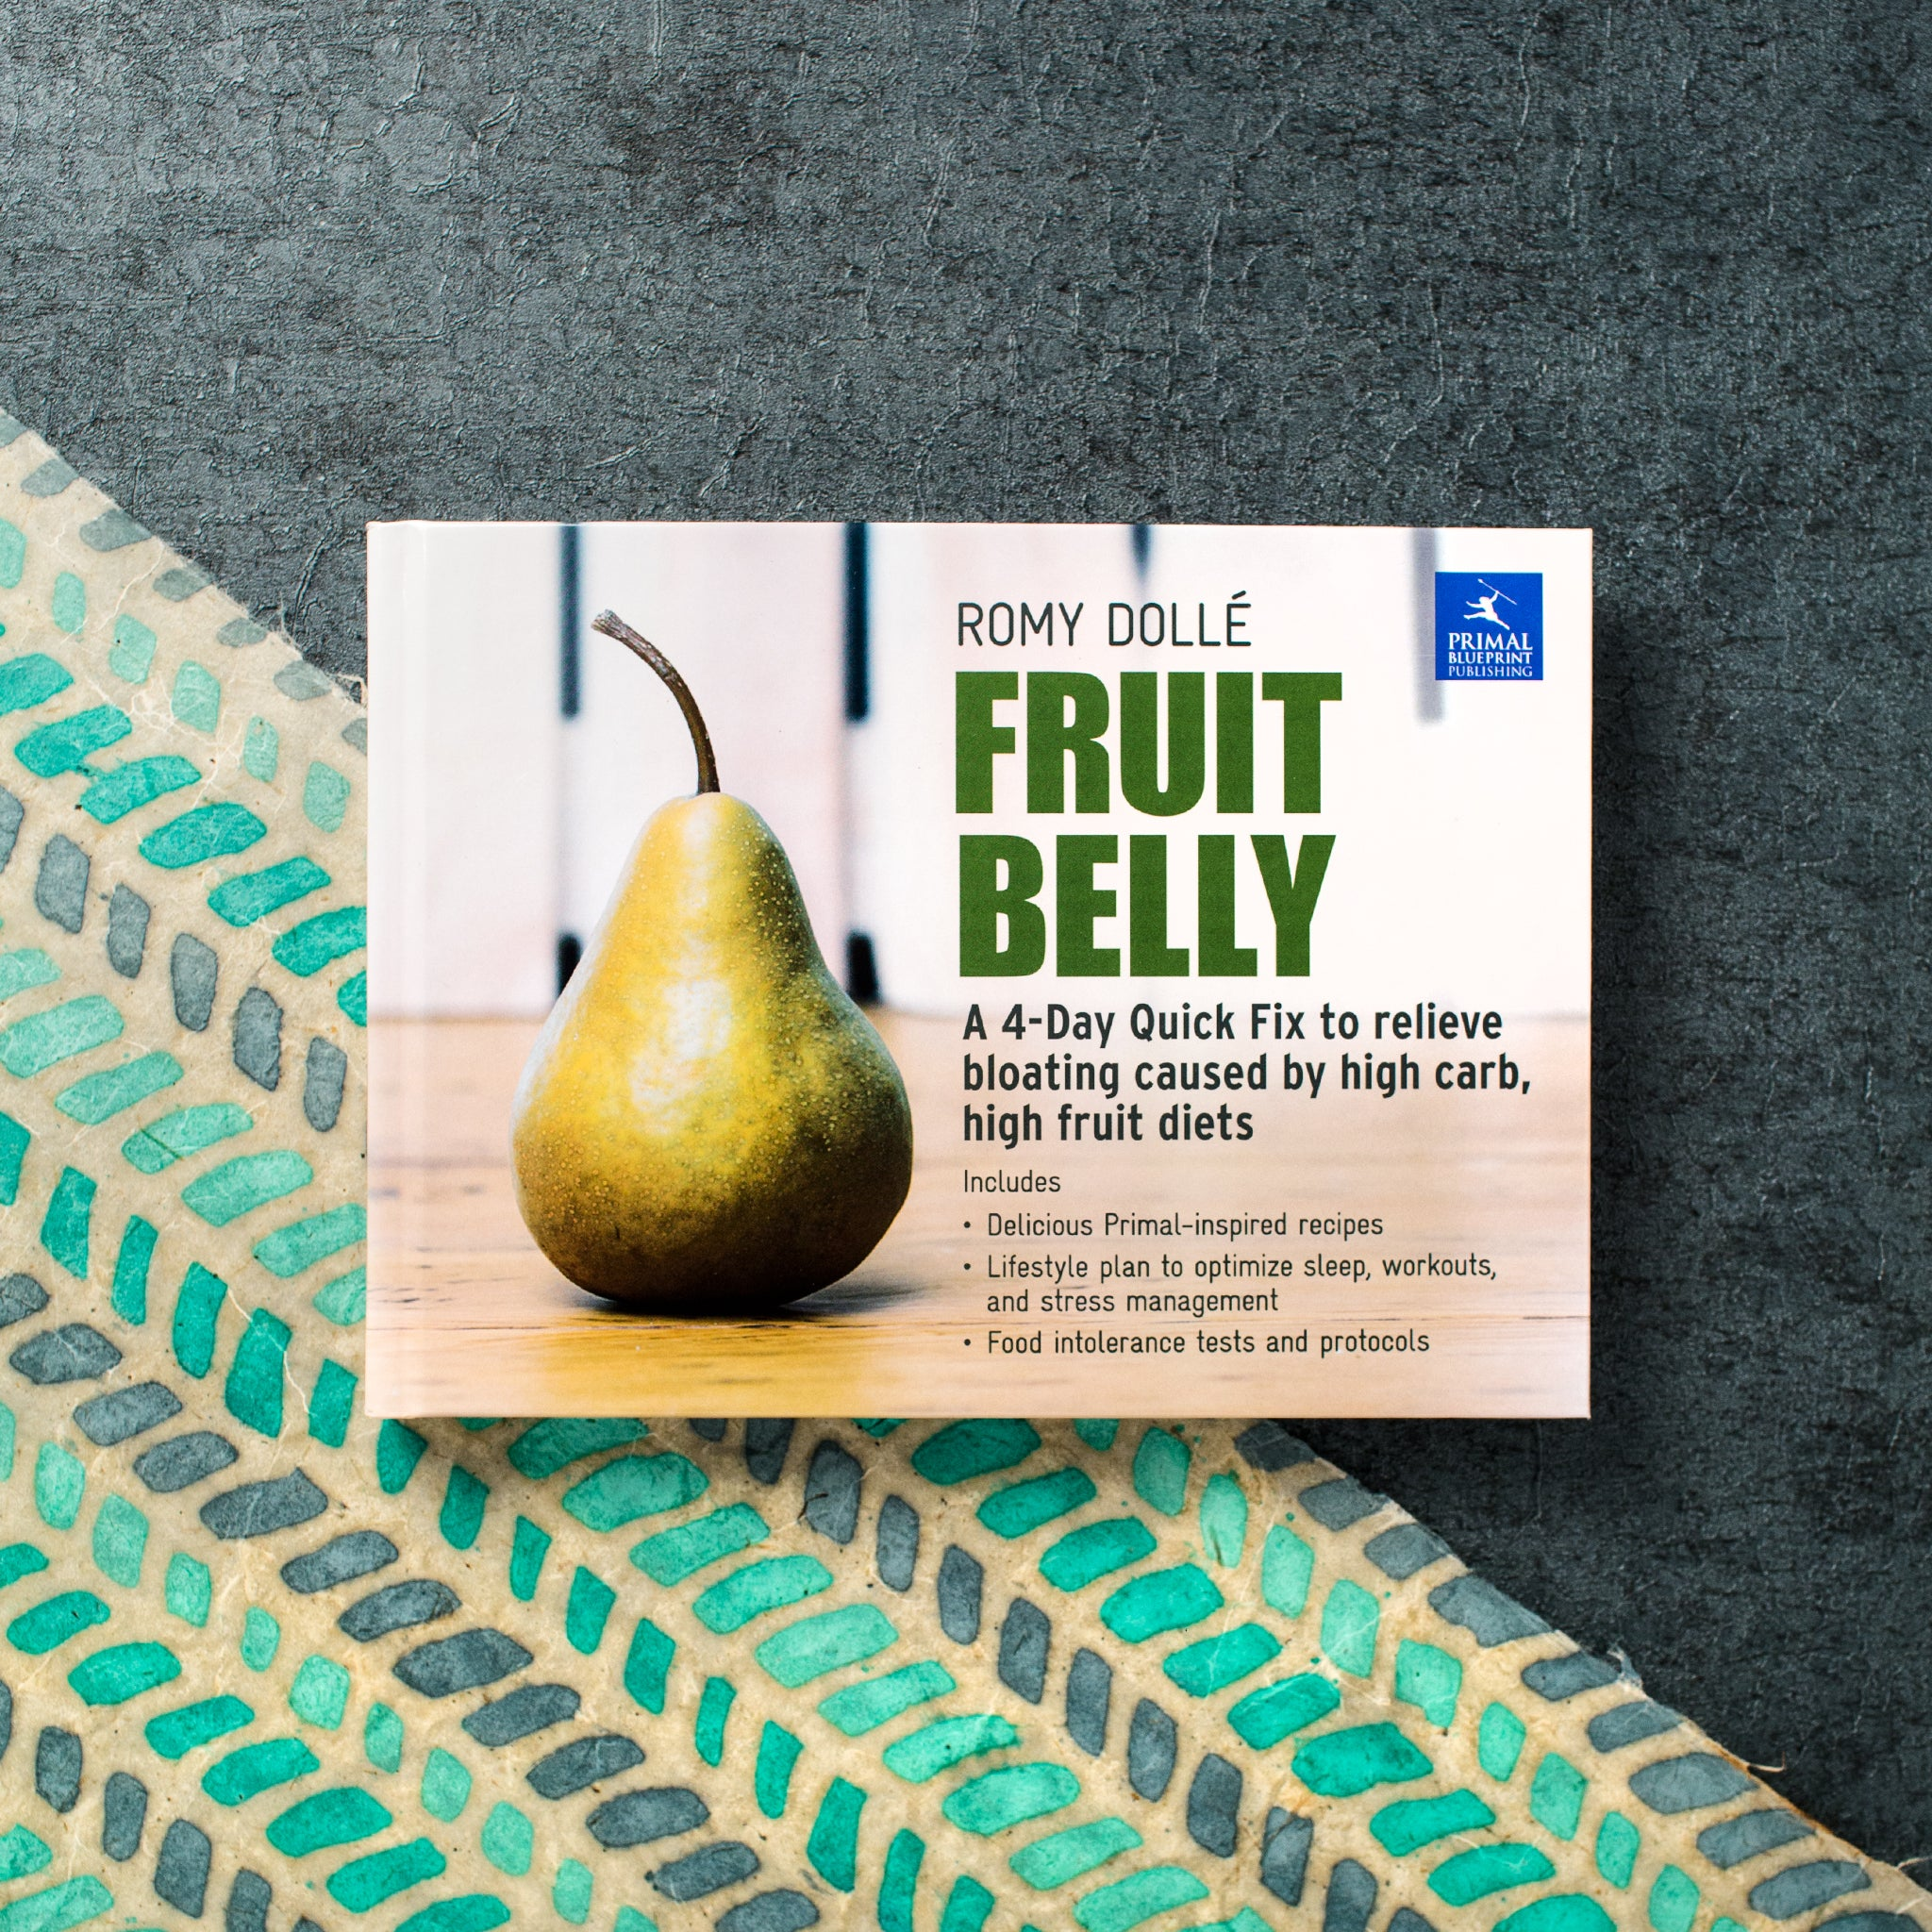 Fruit belly primal blueprint malvernweather Image collections